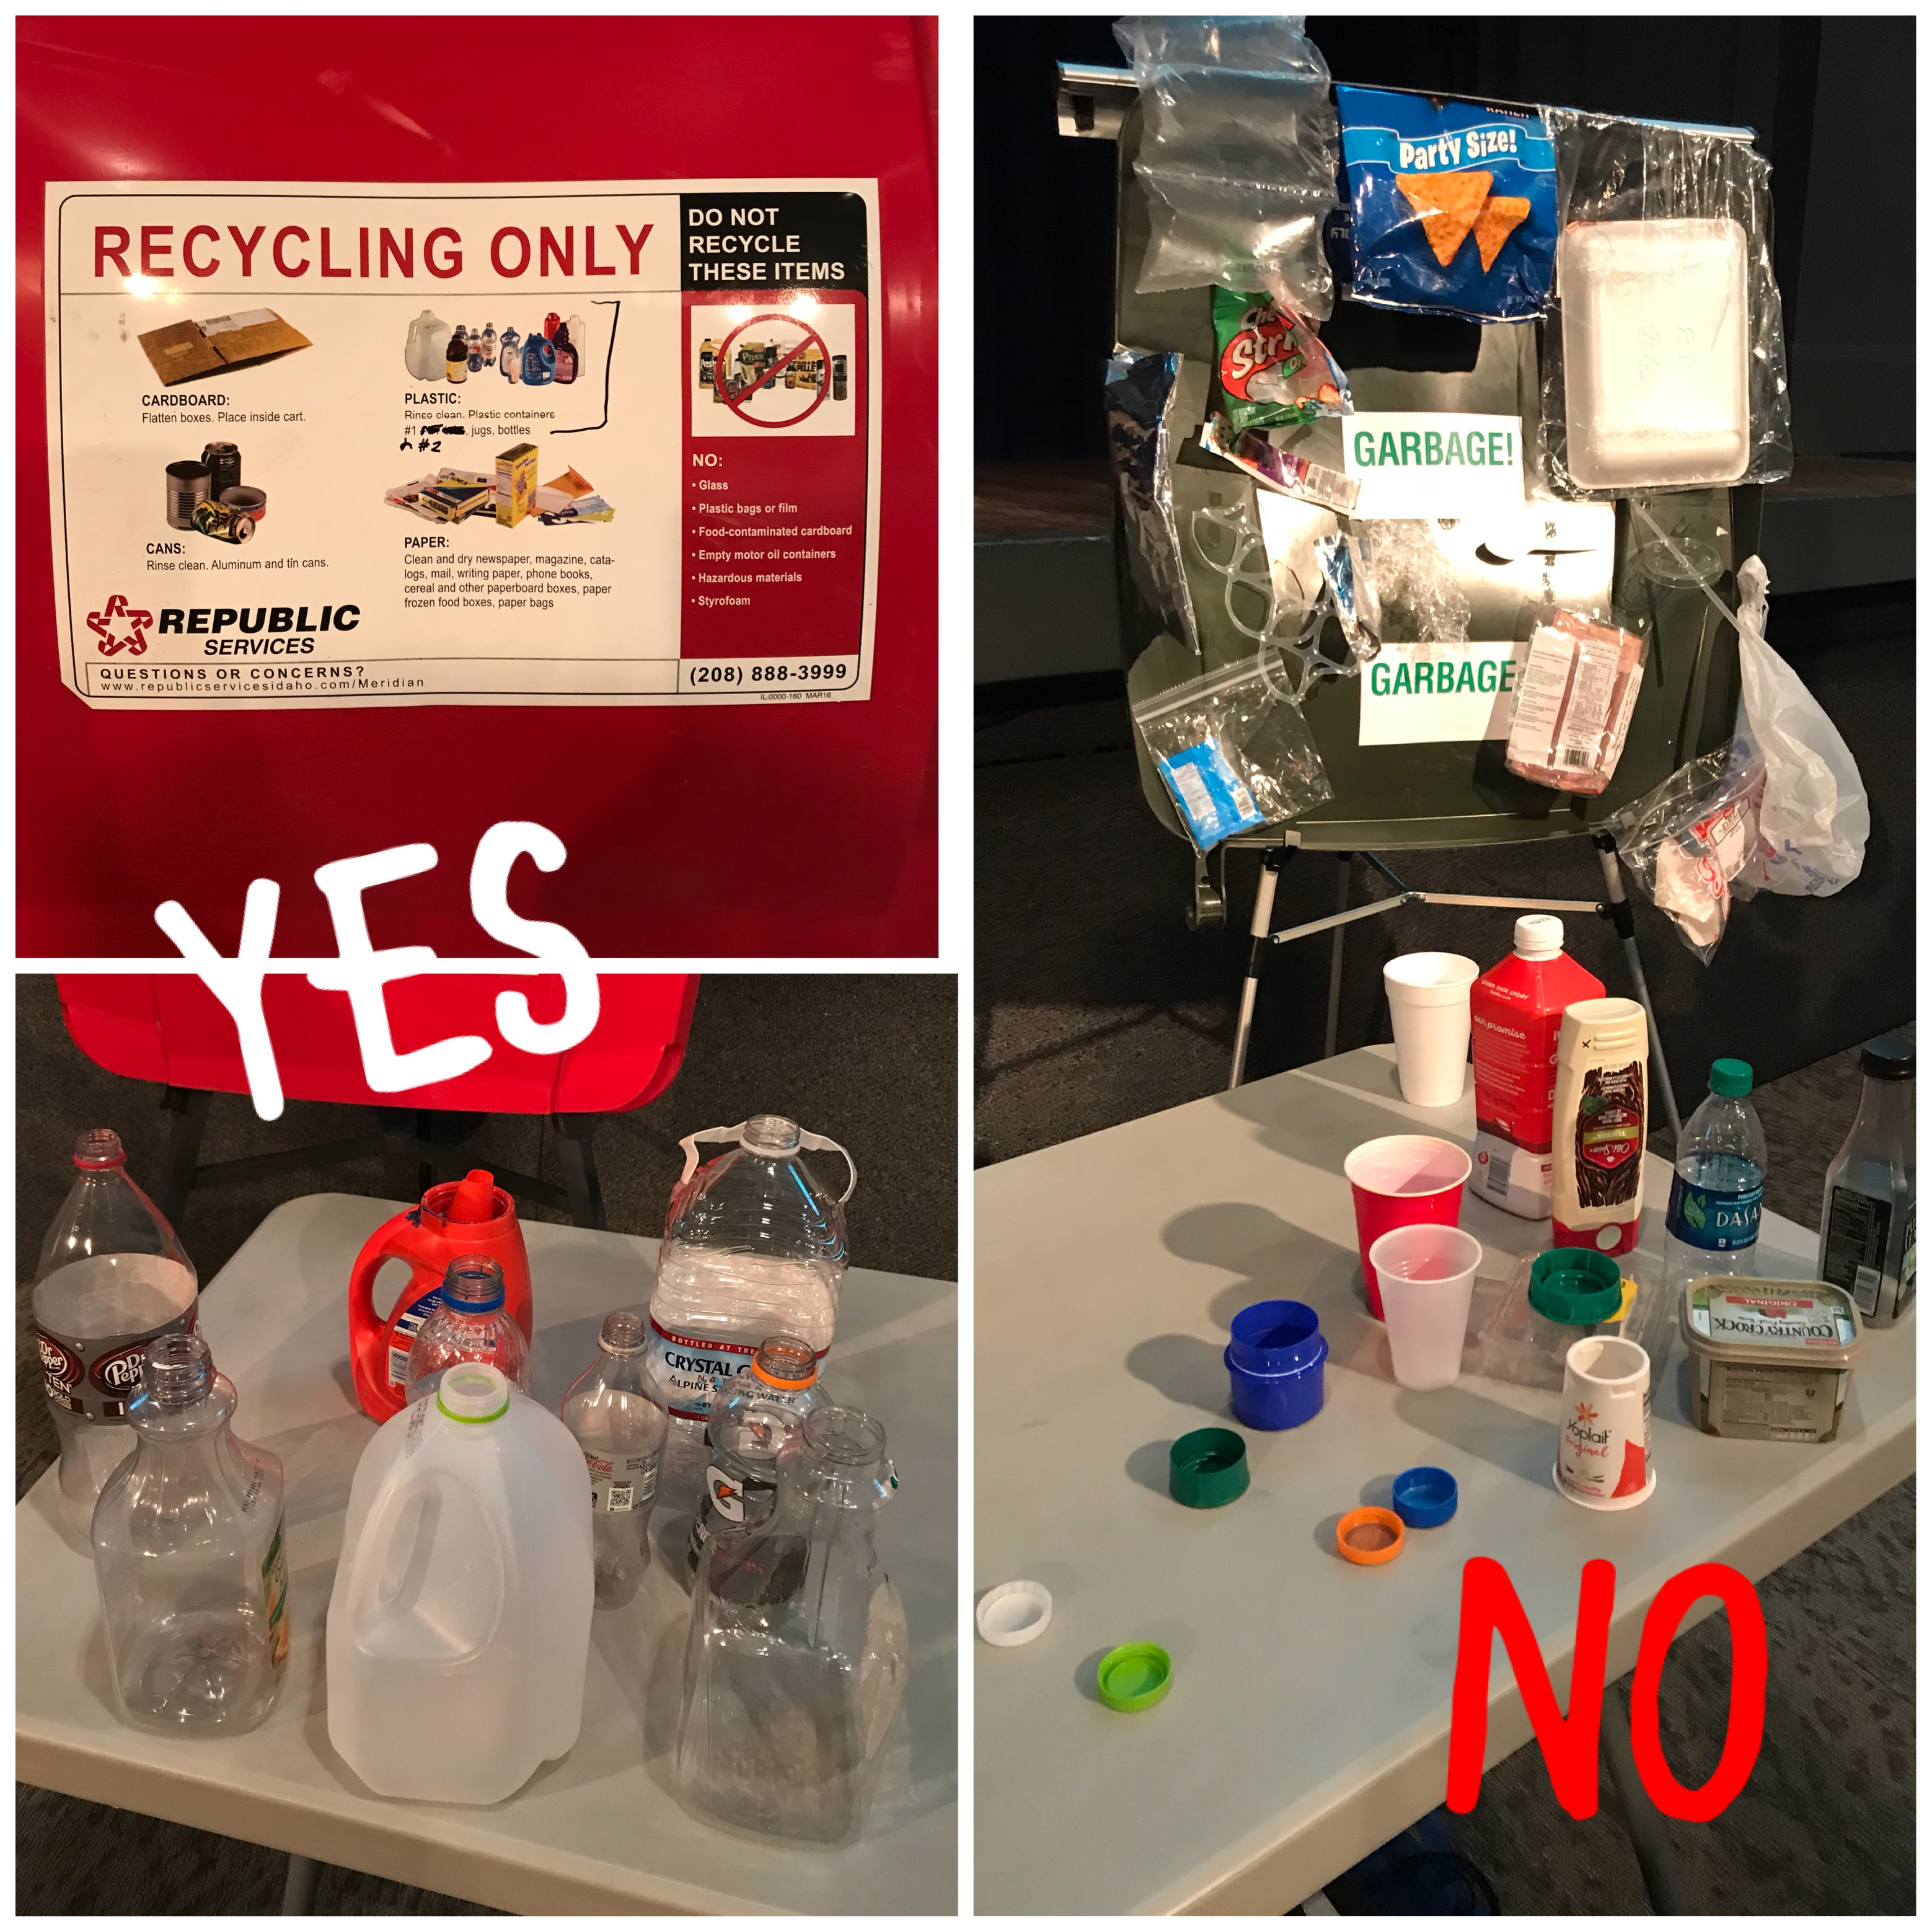 examples of items to recycle vs discard